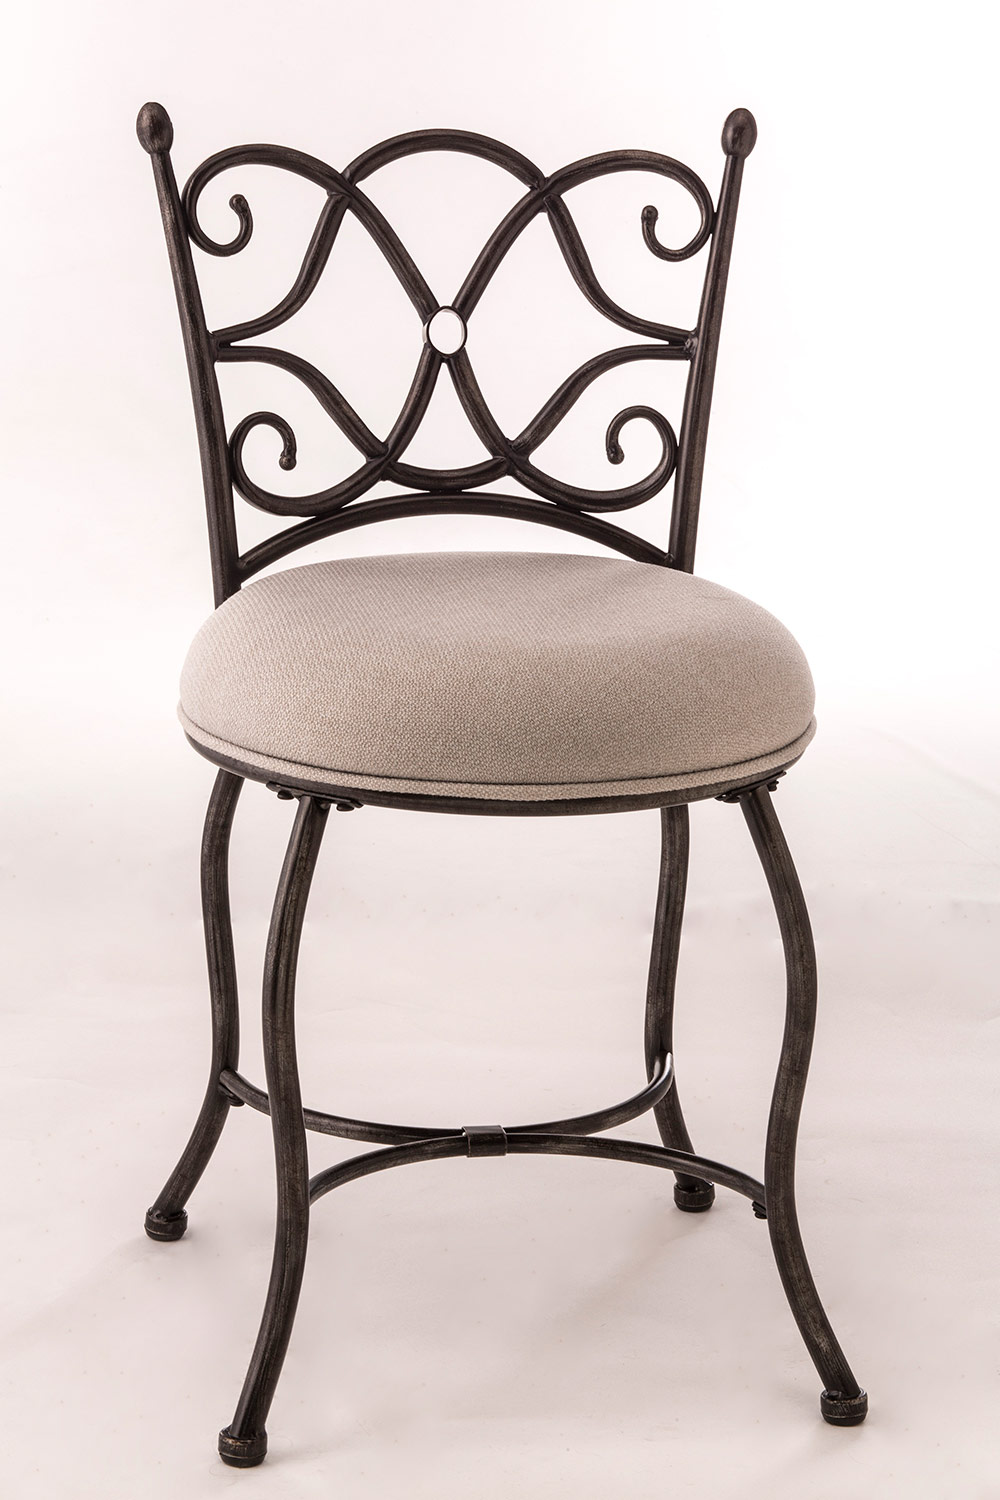 Hillsdale Brody Vanity Stool - Gray with Rubbed Black